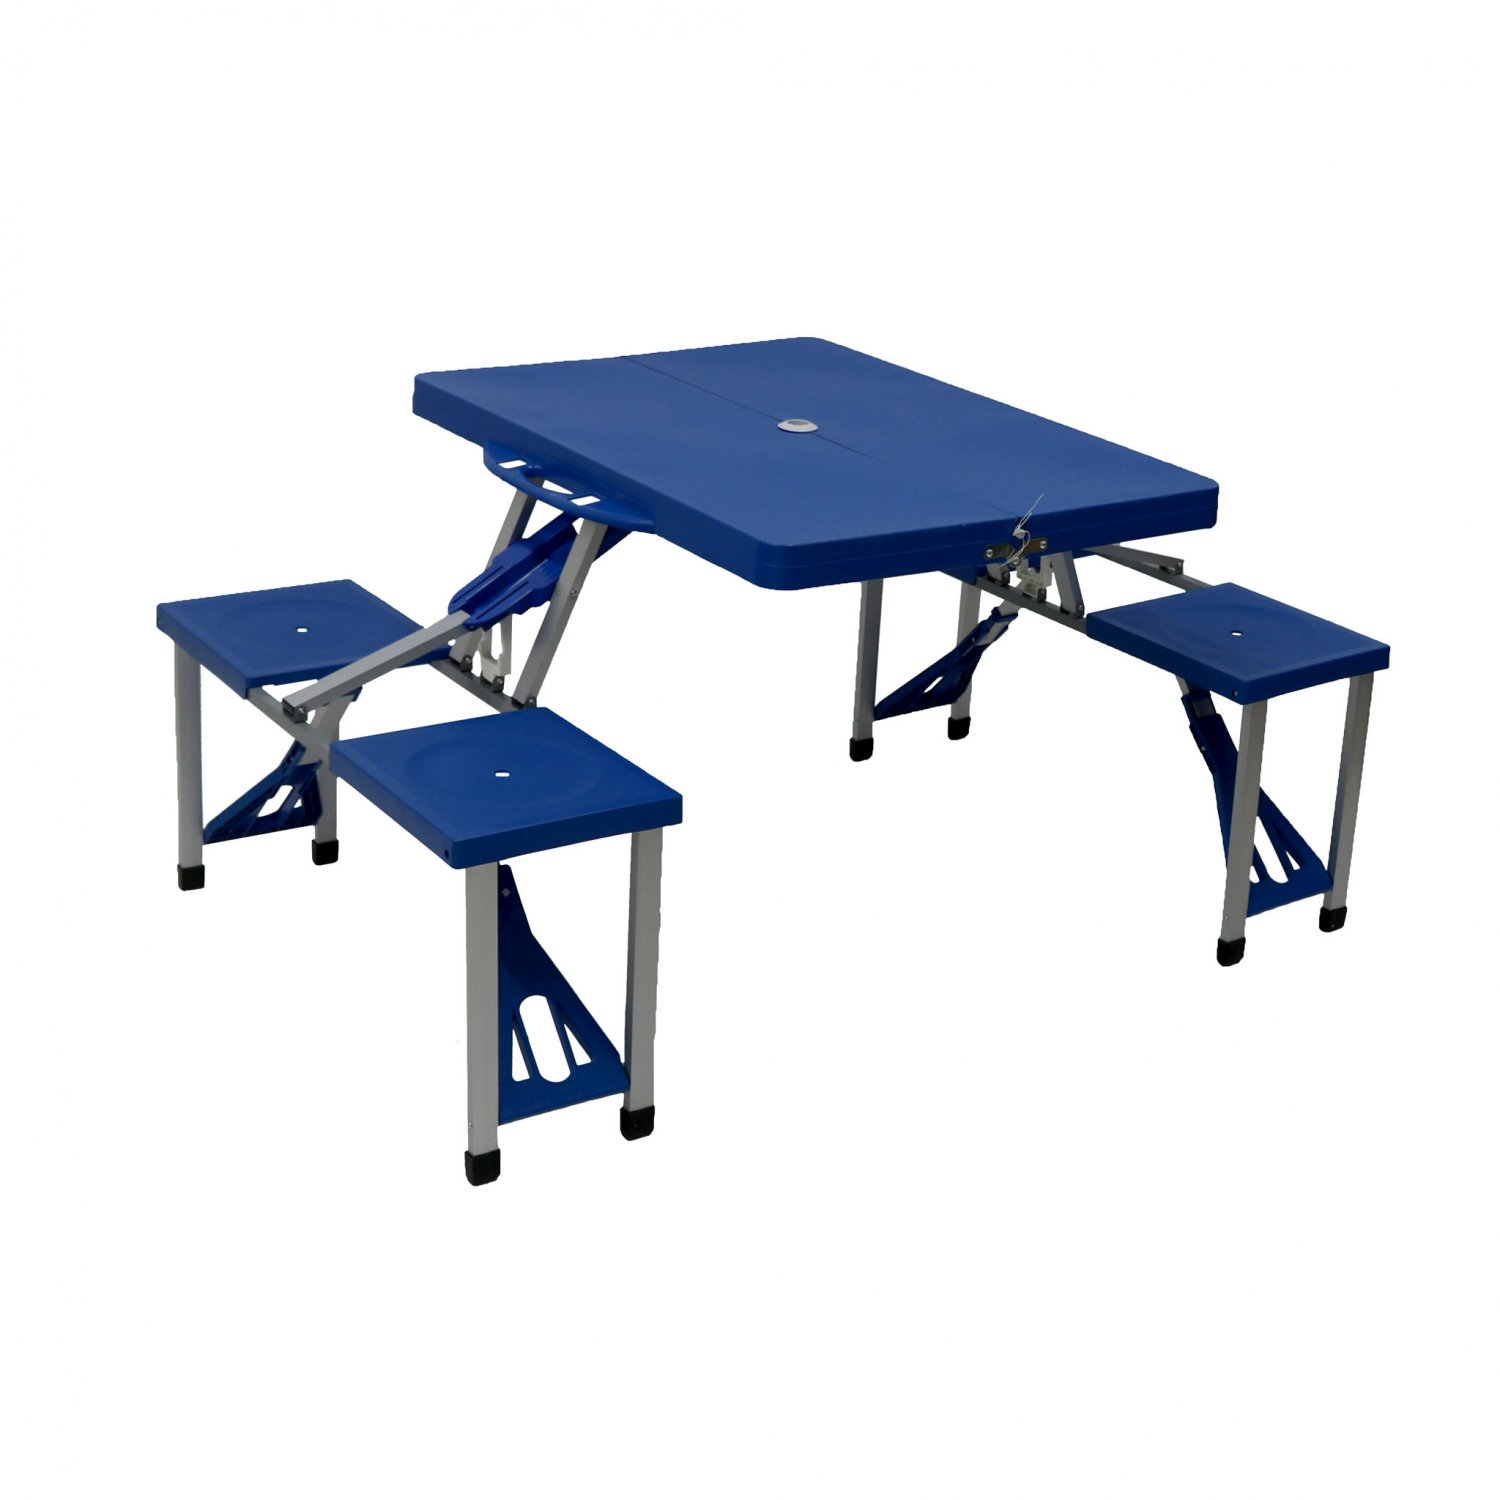 Portable Folding Outdoor Picnic Table and Bench Set 4 Seats